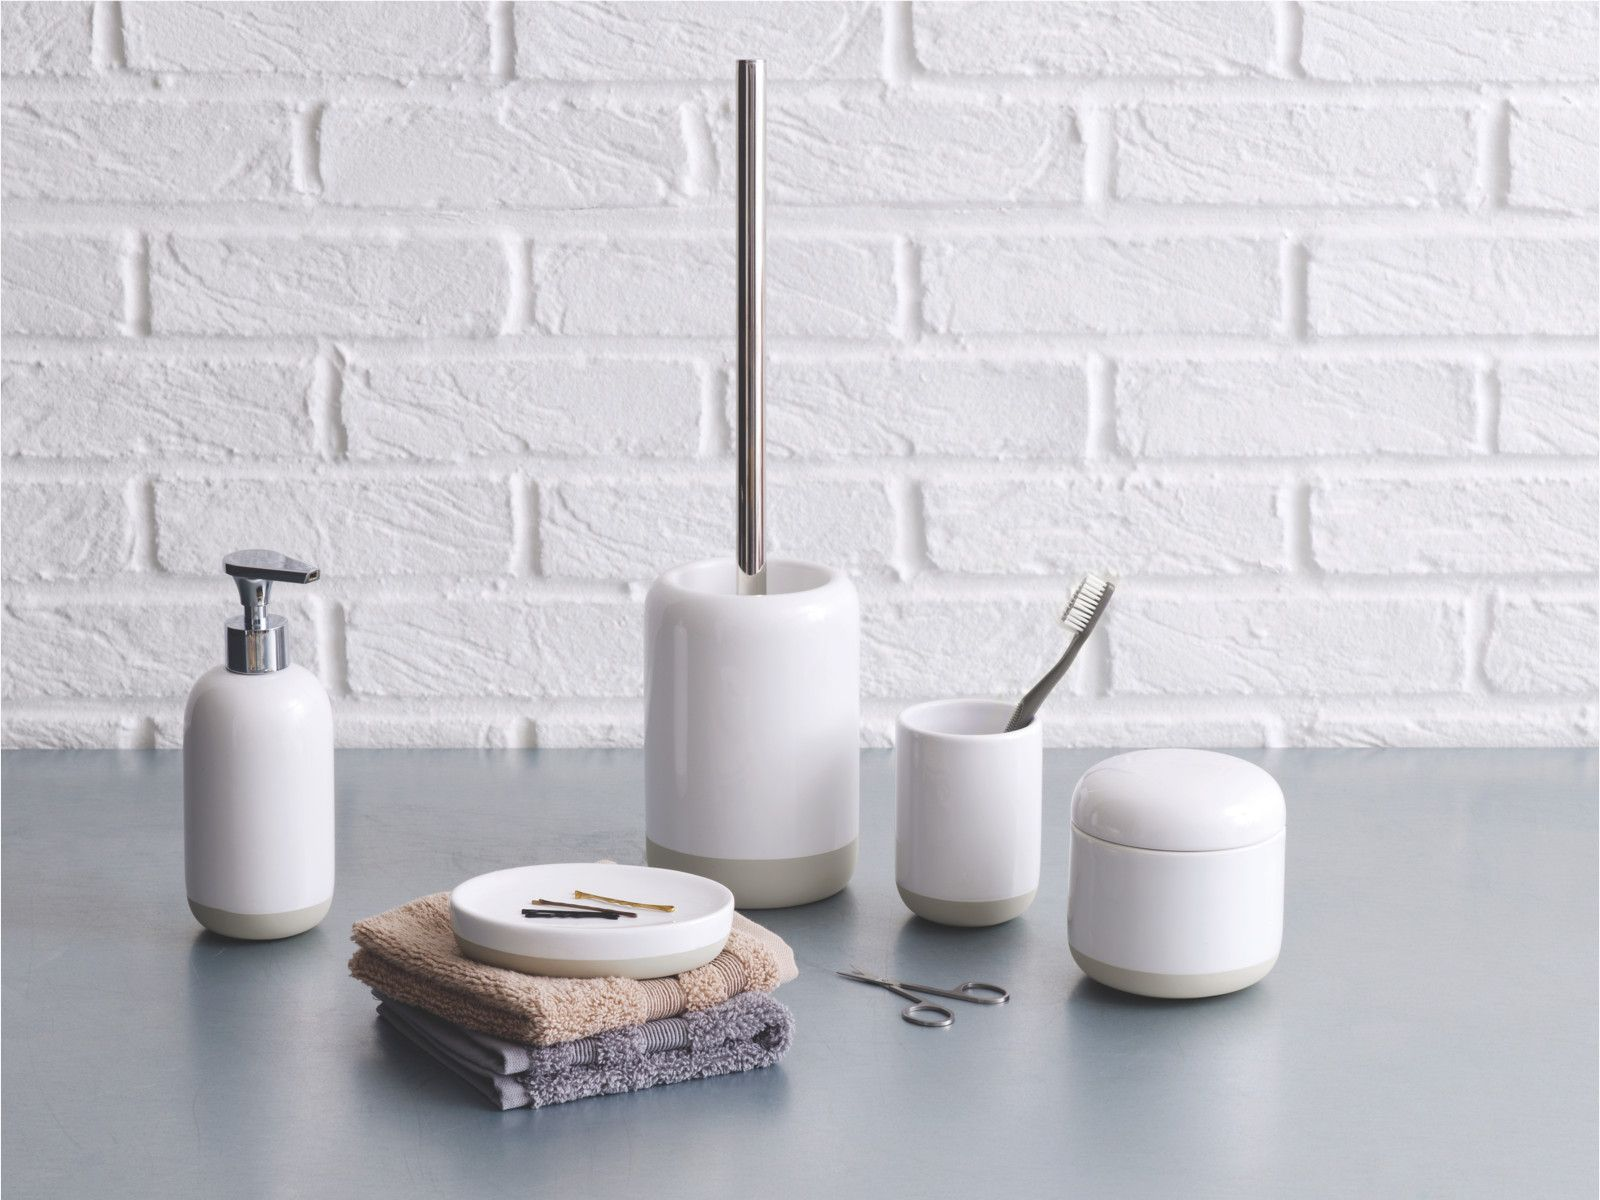 check out the new furniture and accessories from our new ss14 lookbook bathroom accessories setstoilet brushwhite